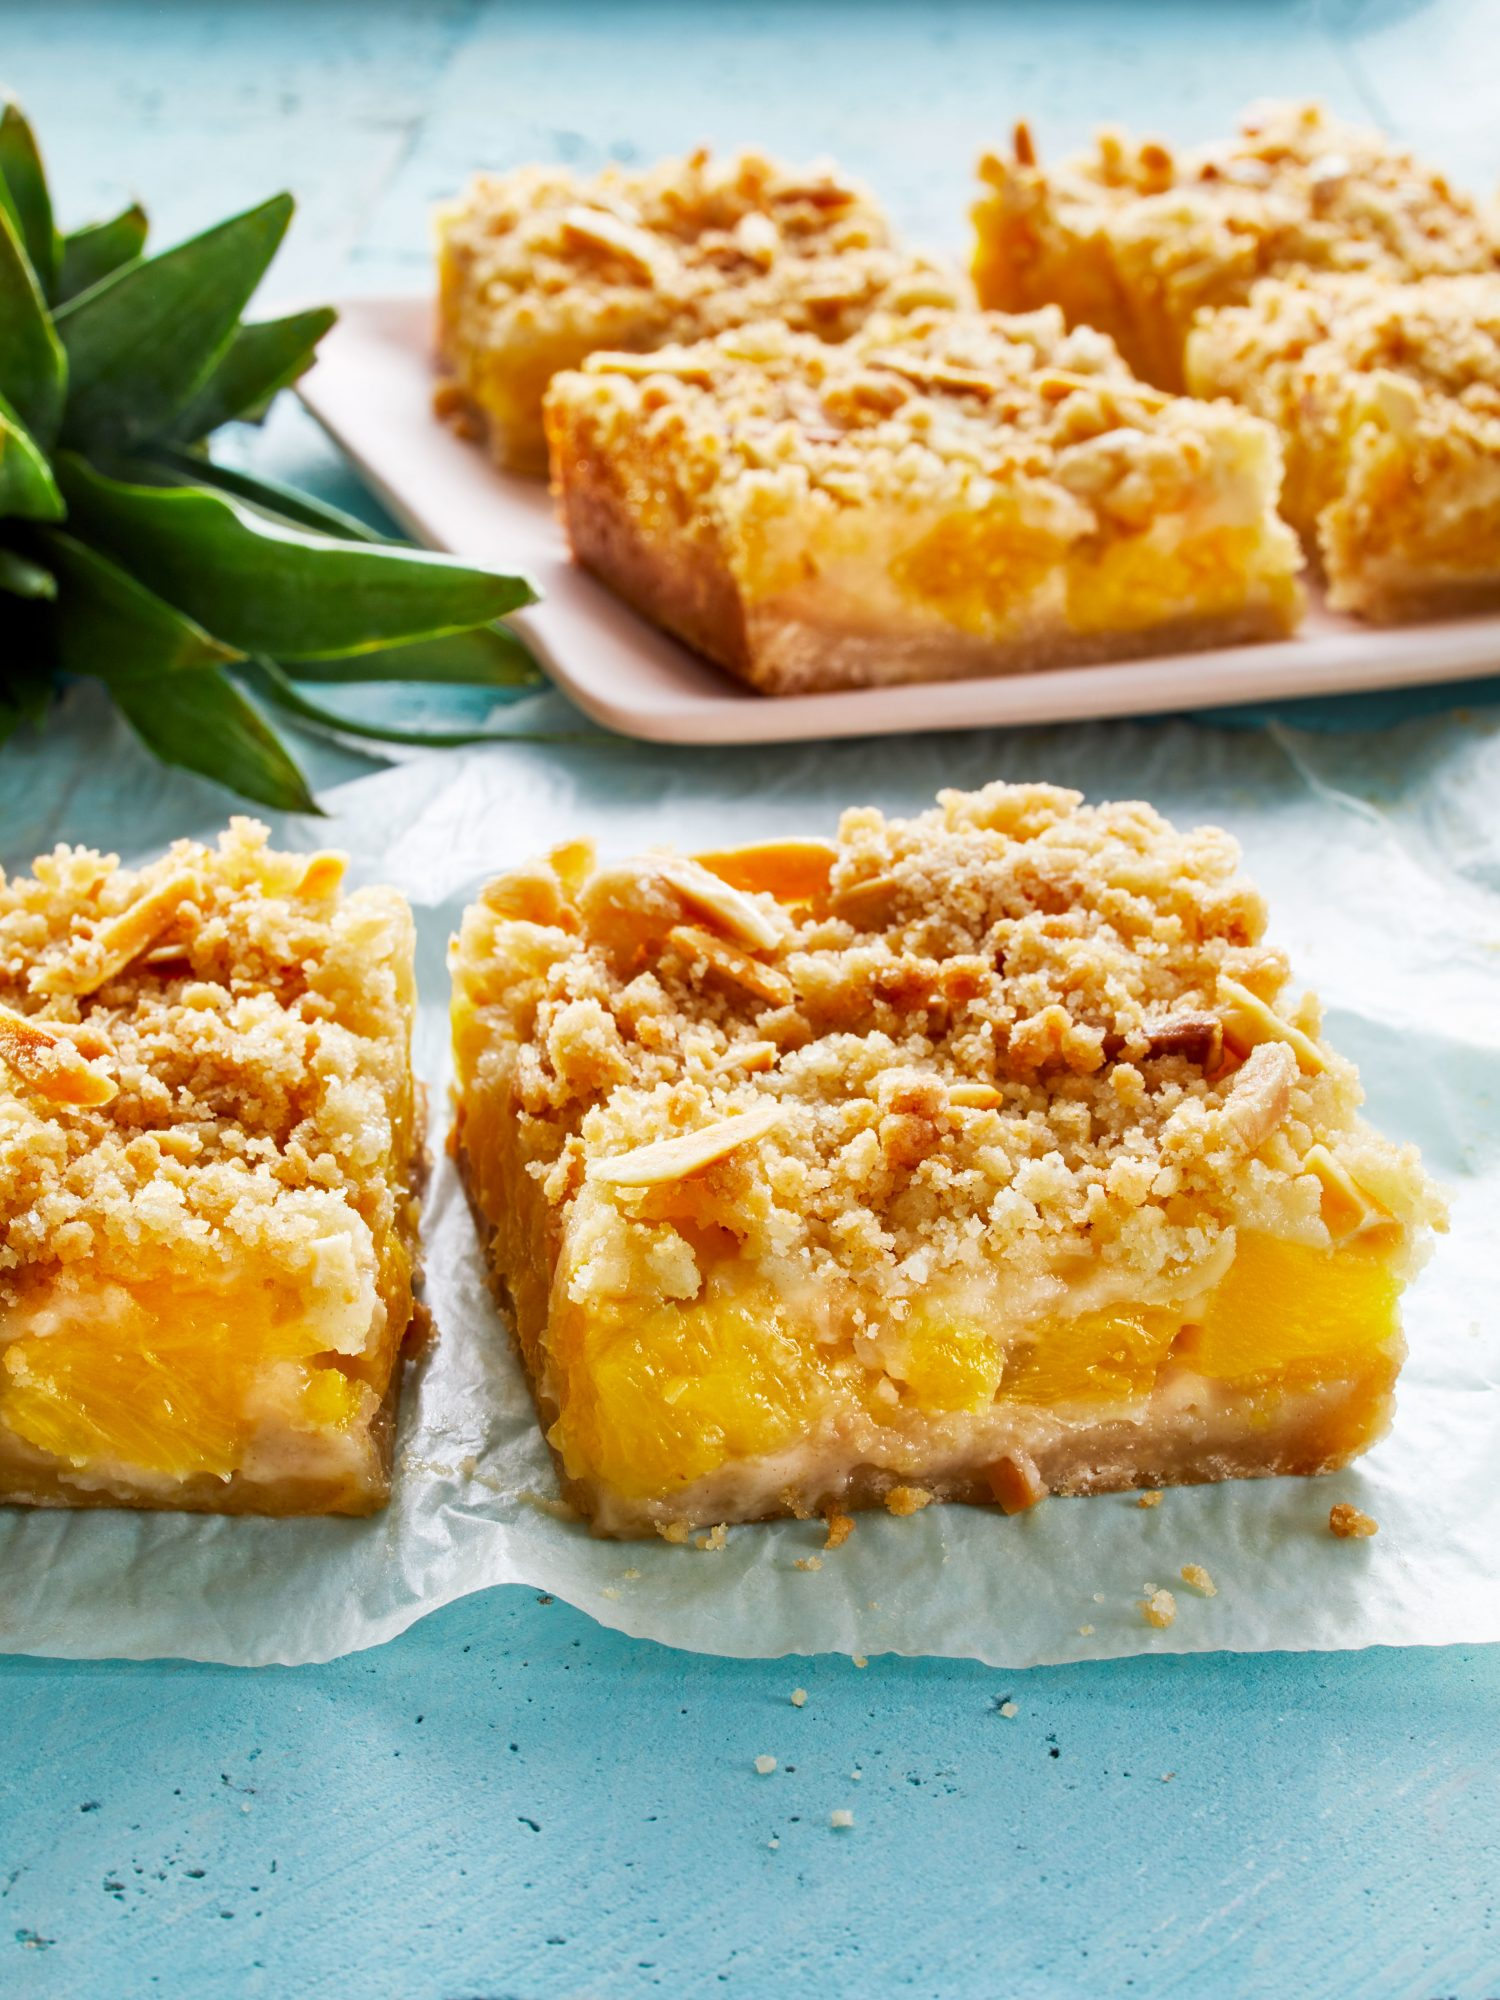 Buttery Pineapple Crumble Bars